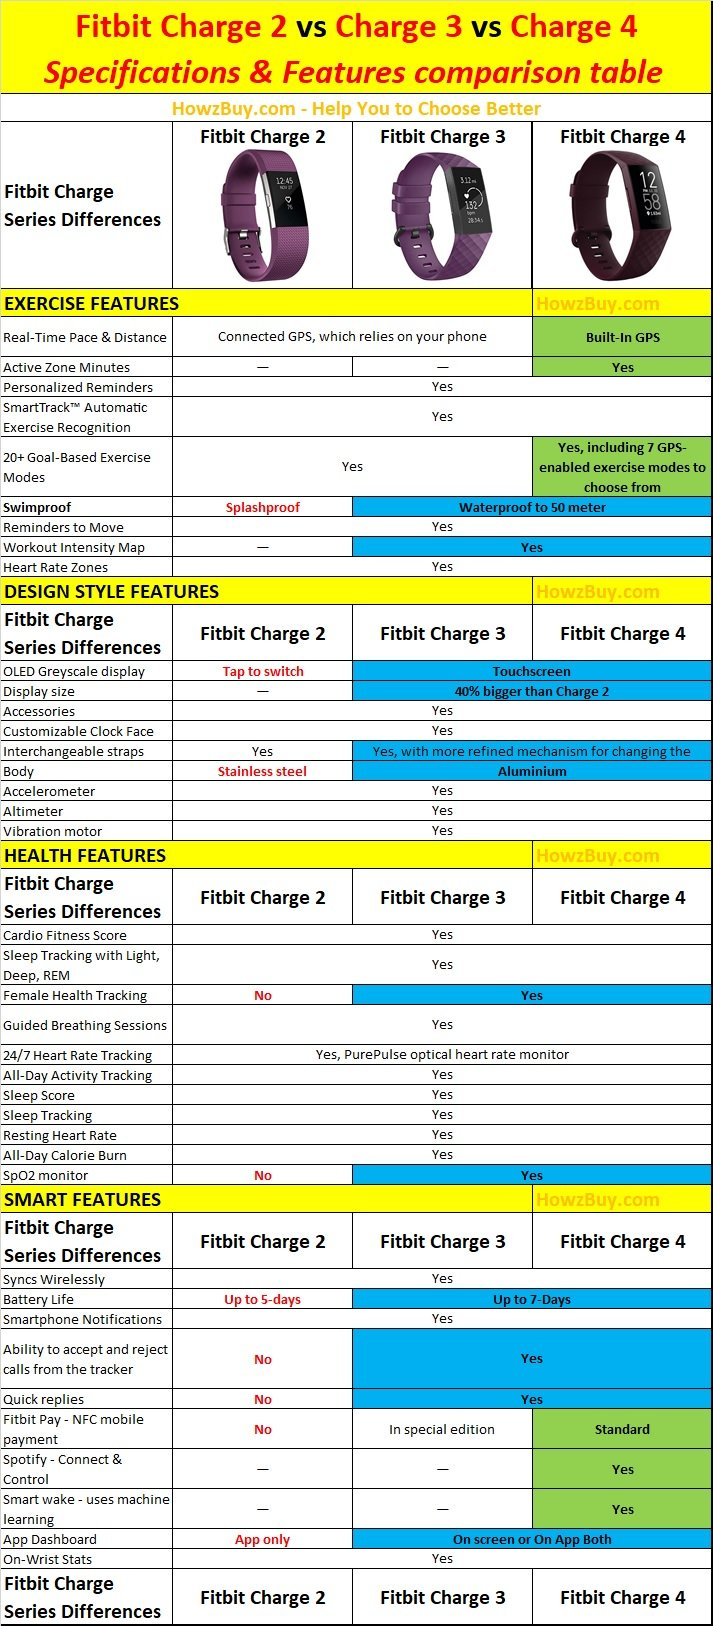 Fitbit Charge 2 vs Charge 3 vs Charge 4 - Specifications and Features comparison table new